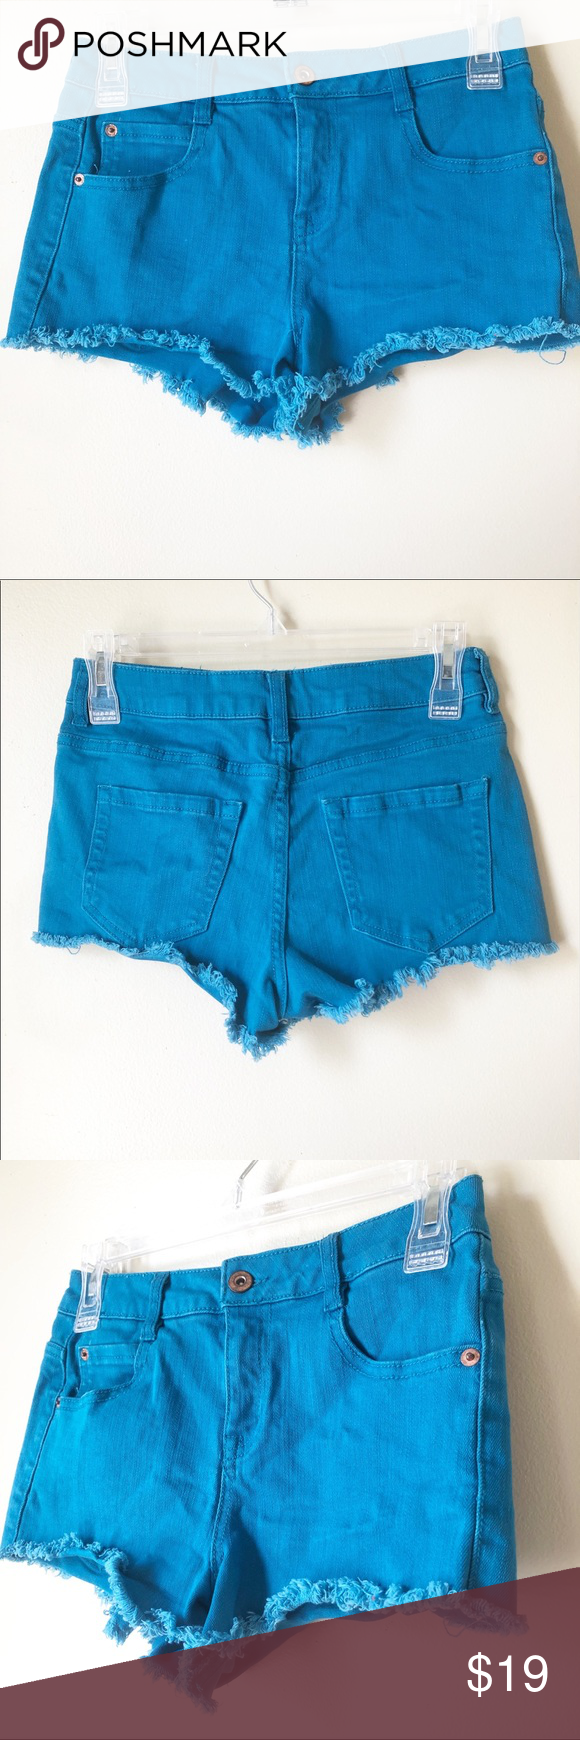 Forever 21 Turquoise Denim Shorts Clothes Design Fashion Trends Fashion